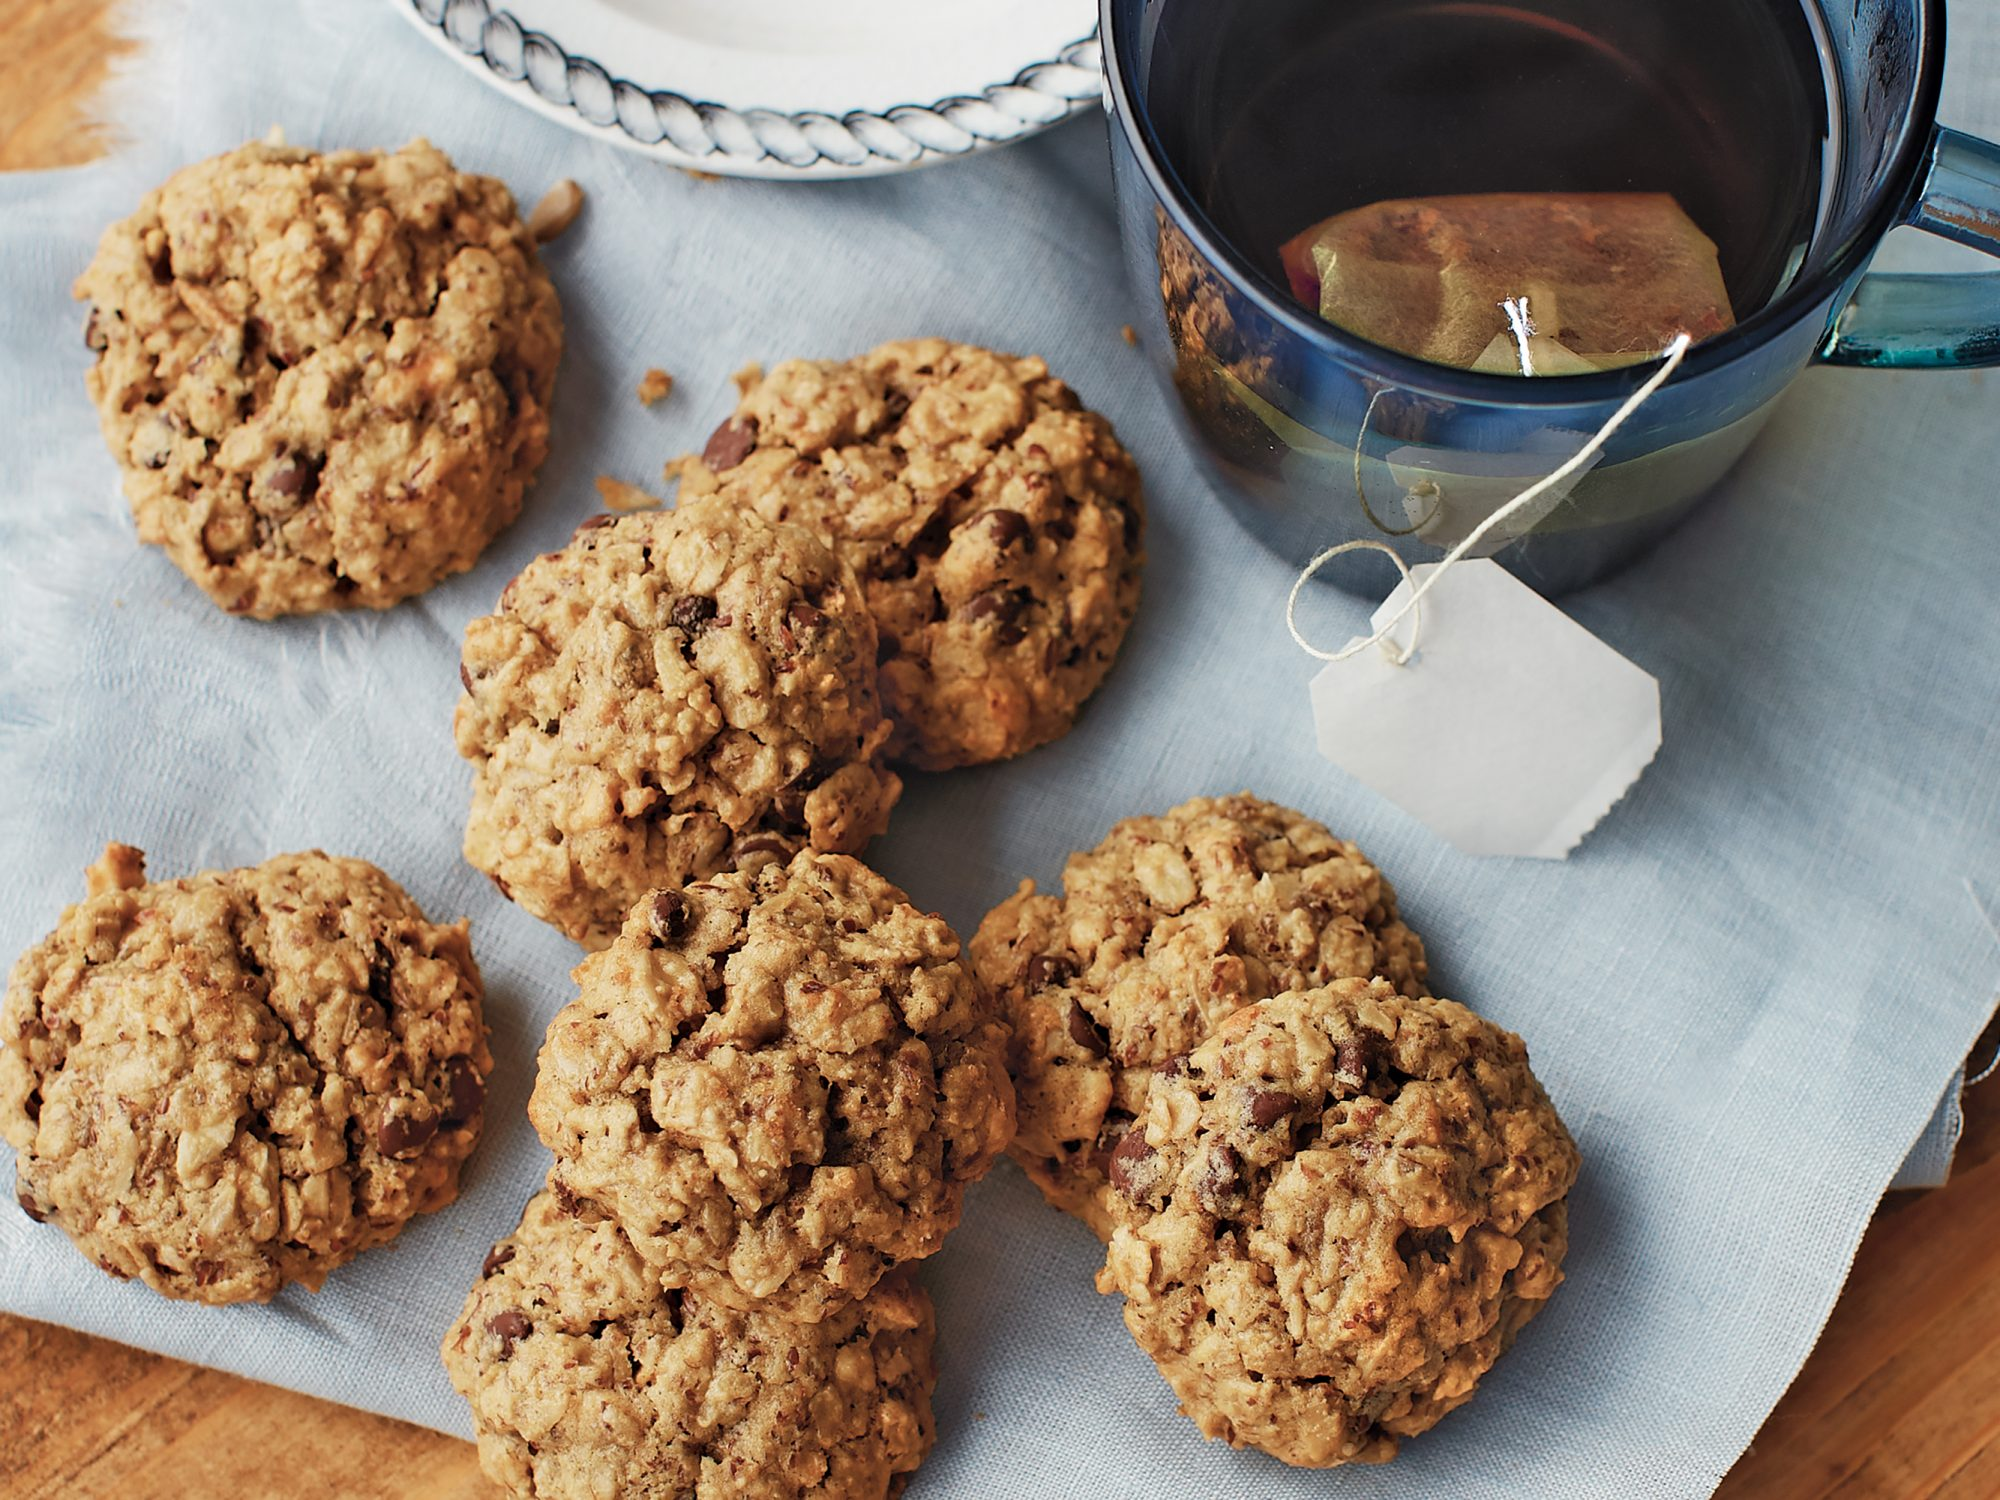 PB, Banana, and Oat Cookies